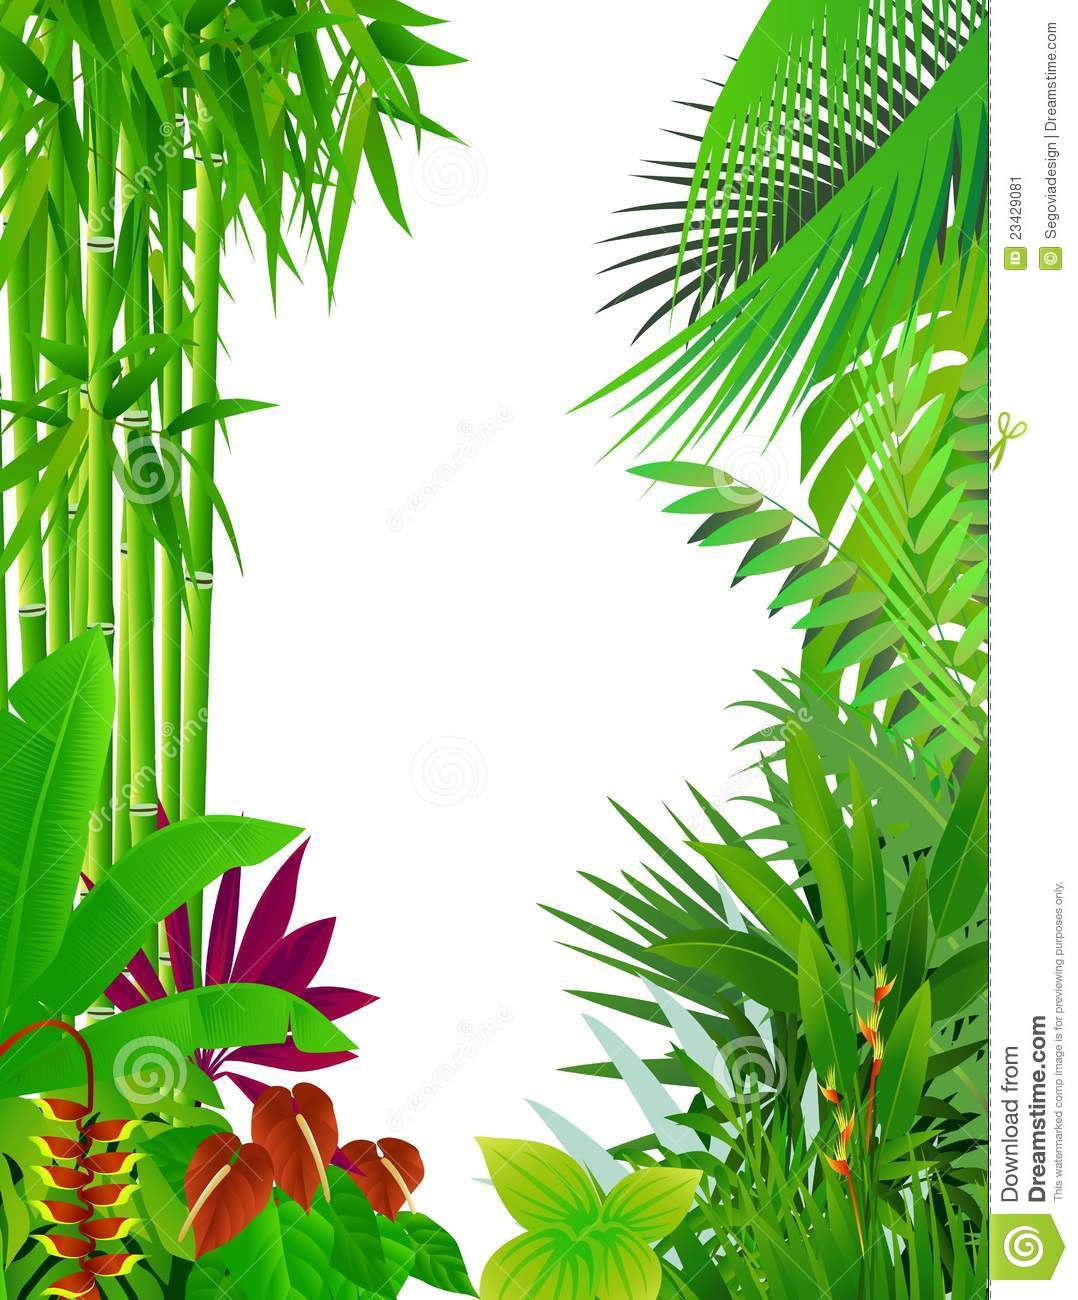 Jungle border clipart graphic royalty free library Jungle Border | Free download best Jungle Border on ... graphic royalty free library